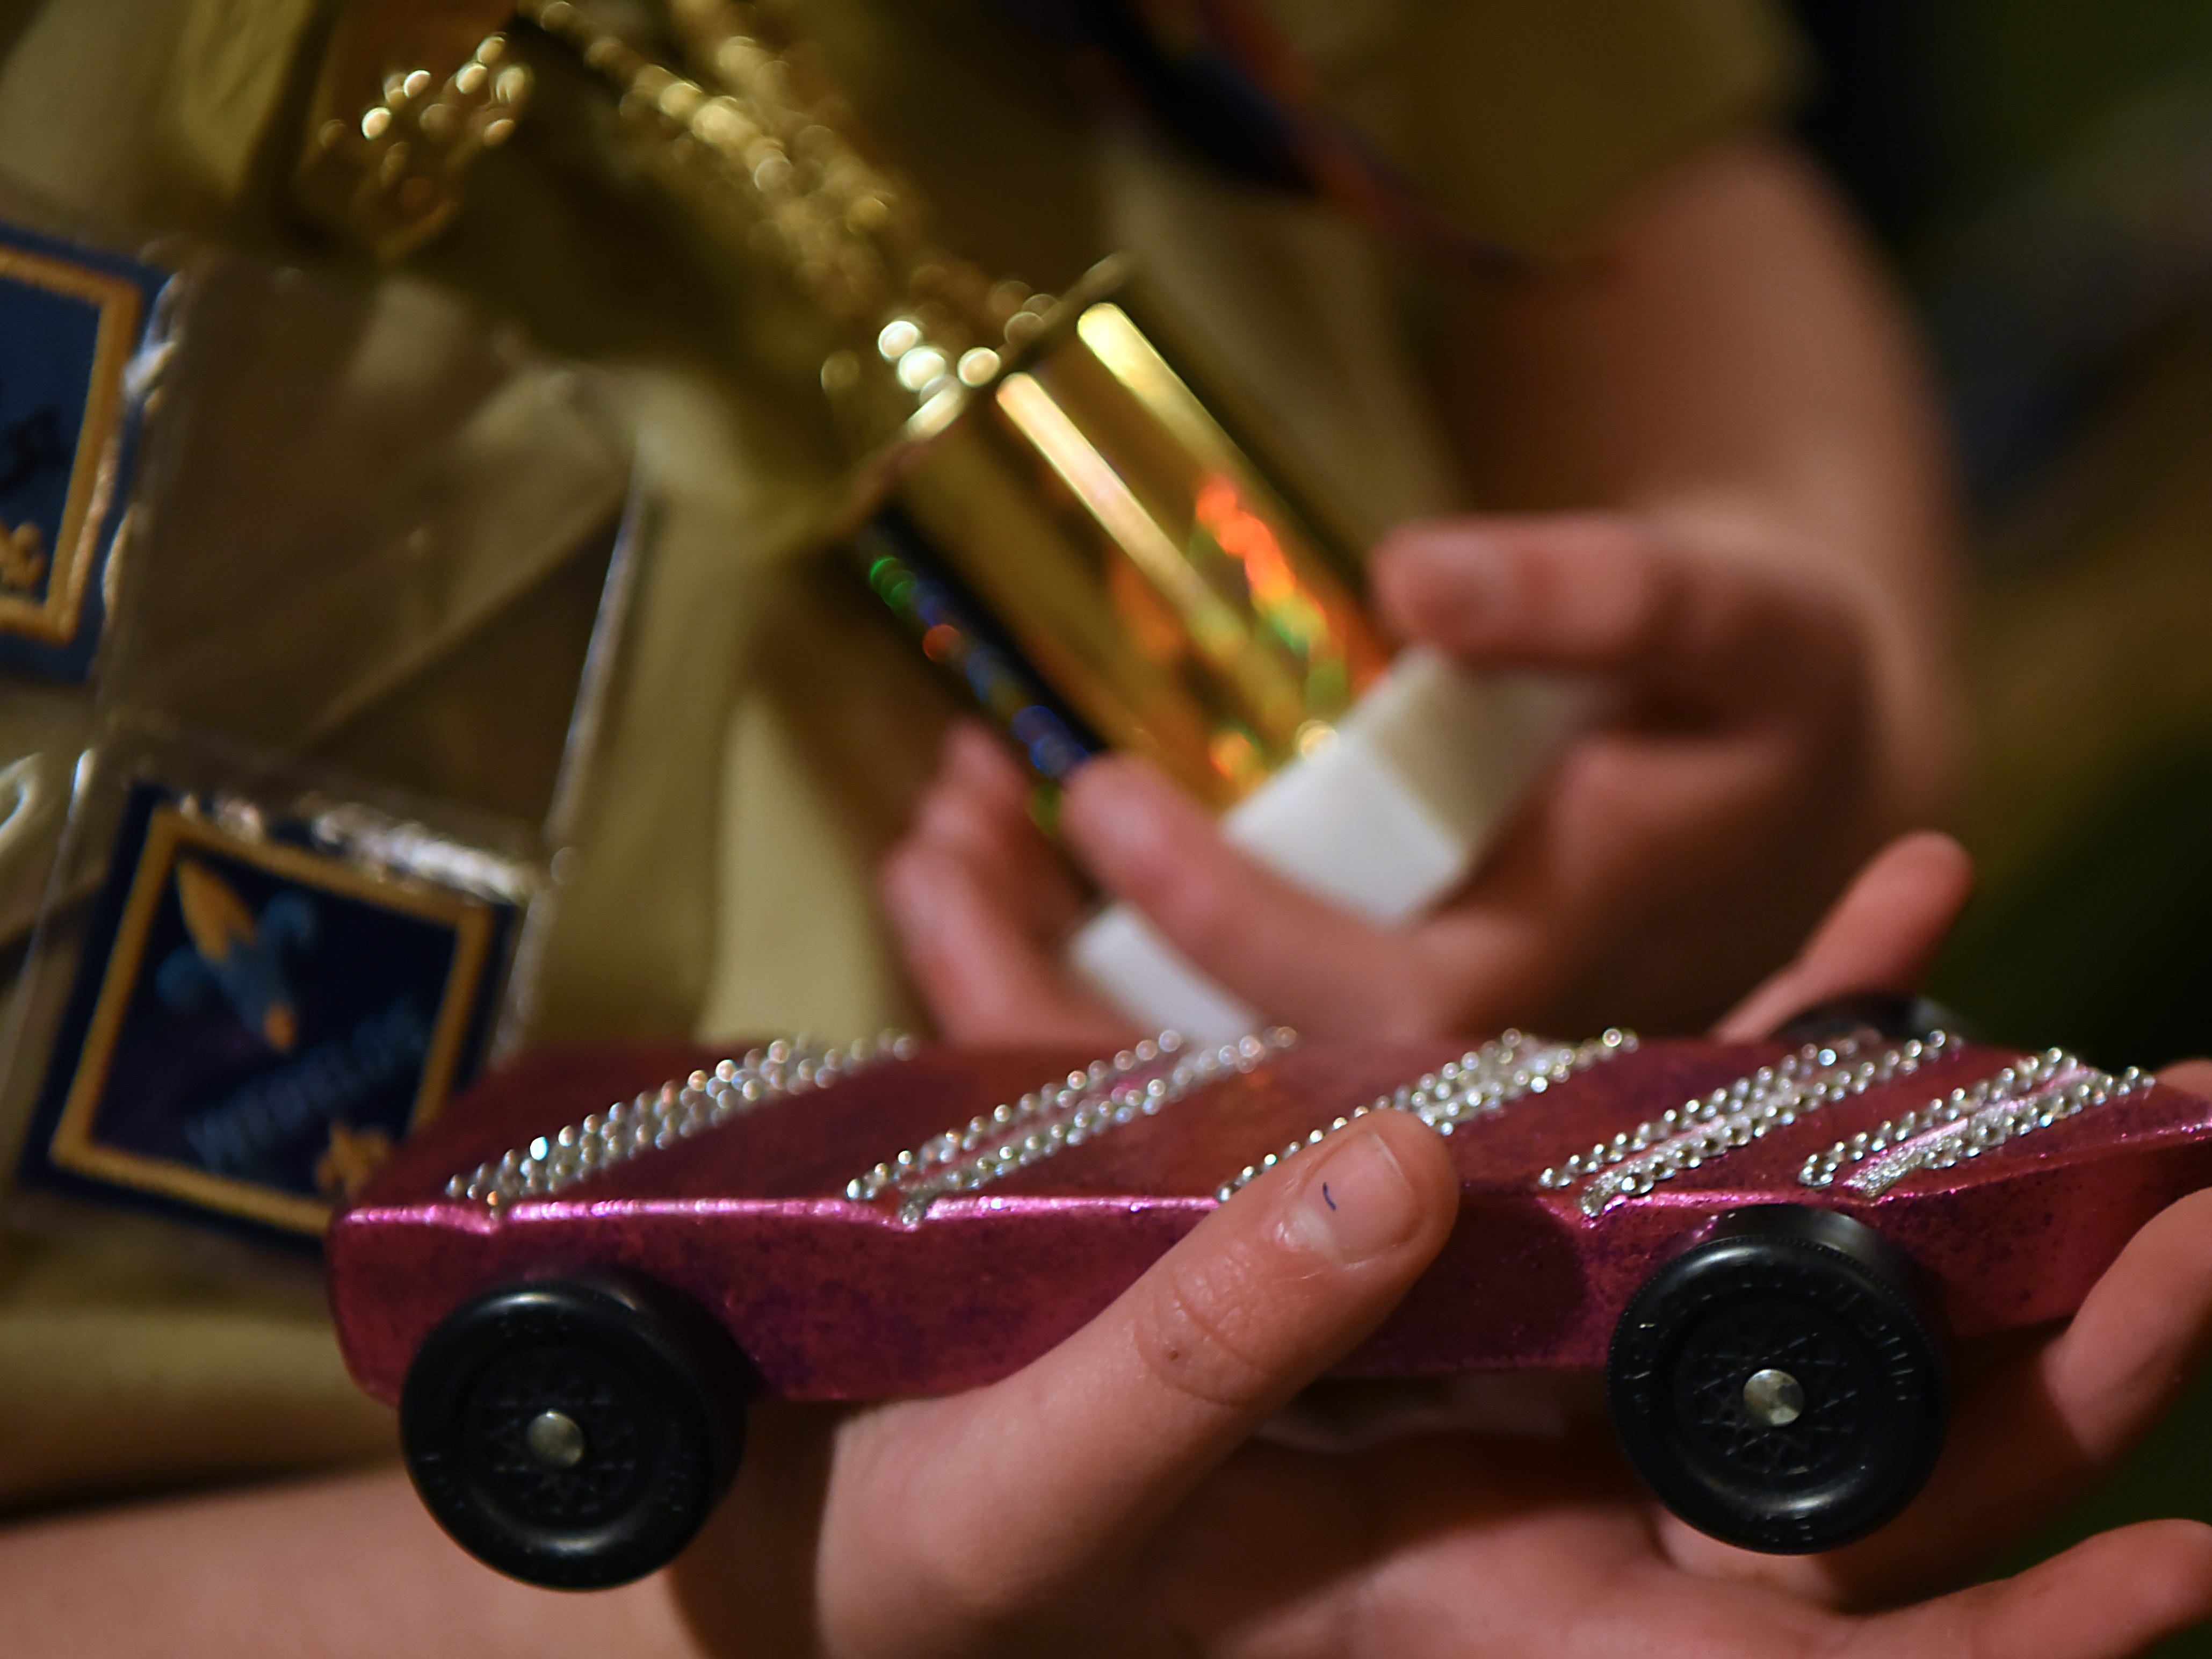 Brenna Johnson, 11 in Cub Scout pack 165 Arrow of Light den, shows off her winning car and trophy during the Morris County Pinewood Derby at Holy Trinity Lutheran Church in Rockaway on Friday January 18, 2019.